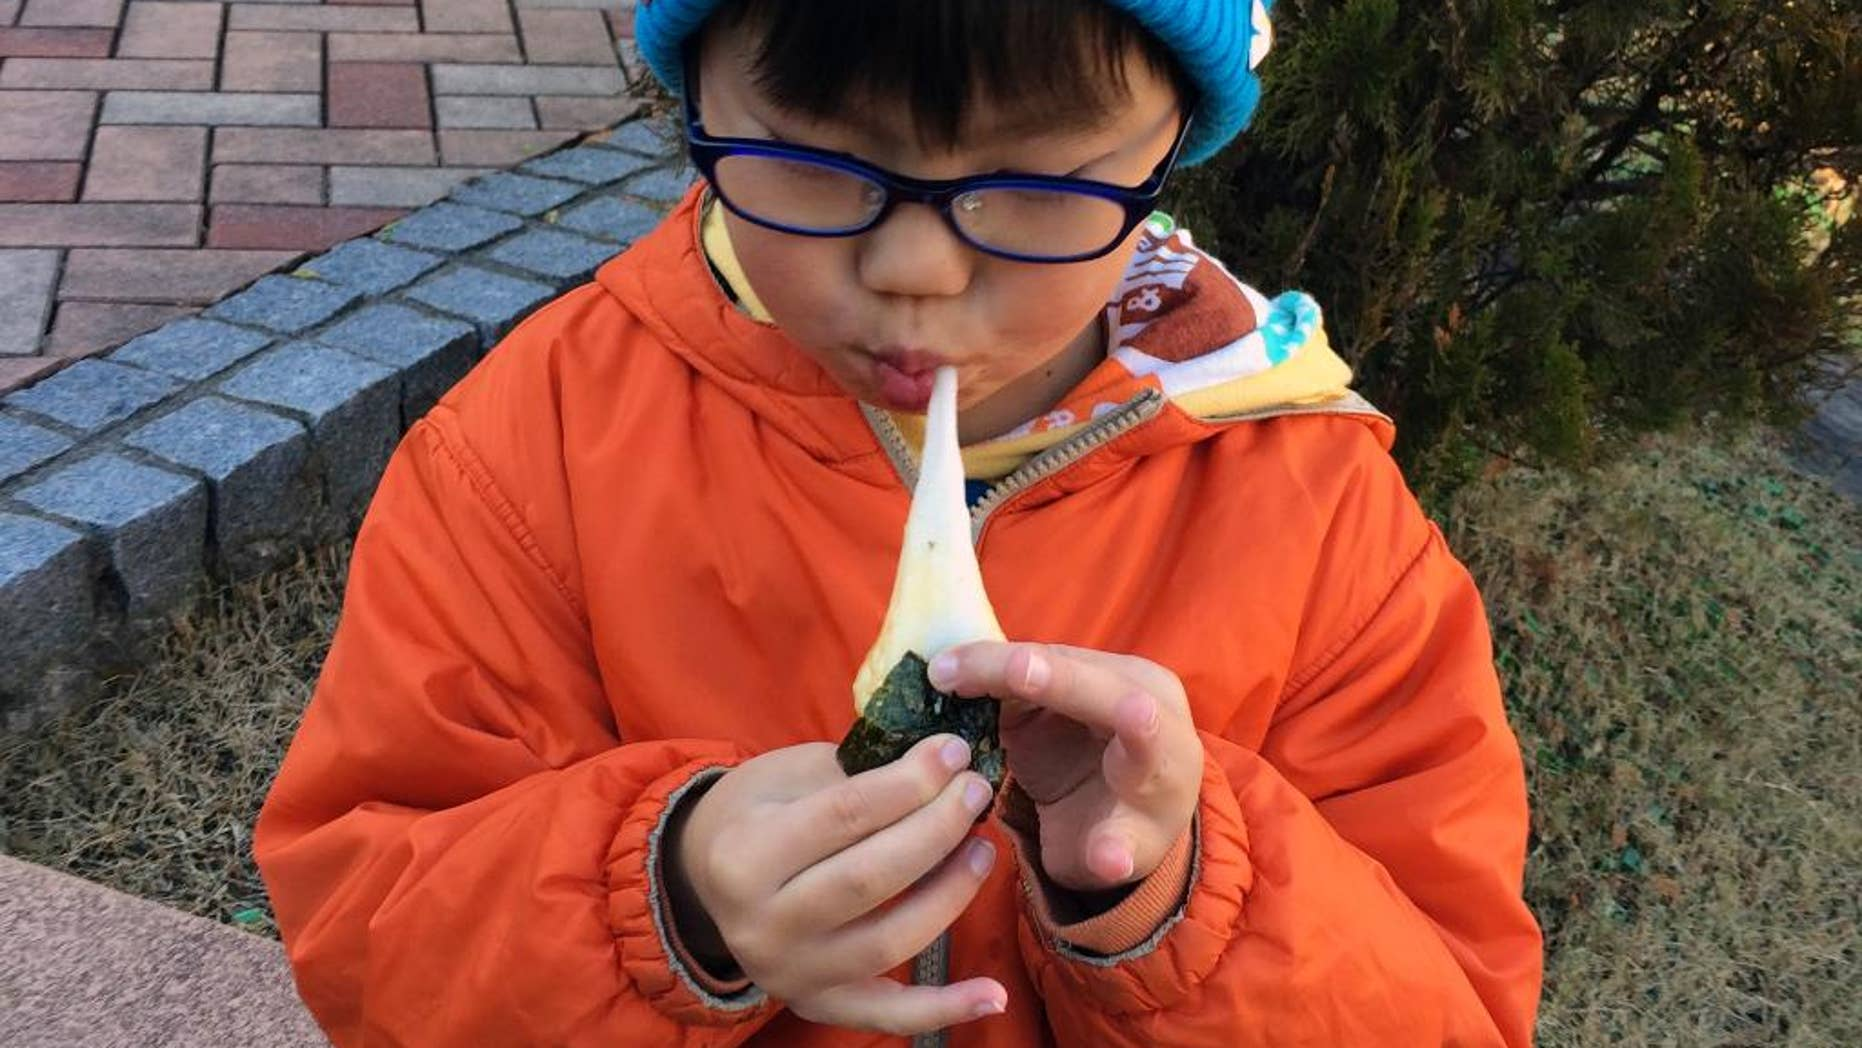 """In this Saturday, Dec. 13, 2014 photo, a boy eats a freshly pounded rice cake, or """"mochi,"""" wrapped in a sheet of seasoned laver, or """"nori,"""" at a park during a rice pounding gathering, part of the annual preparation for the New Year's celebration at a park in Yokohama, near Tokyo. At least nine people have reportedly choked to death on New Year's rice cakes in Japan, and officials are urging people to chew slowly on the treats. (AP Photo/Tetsuya Saruta)"""